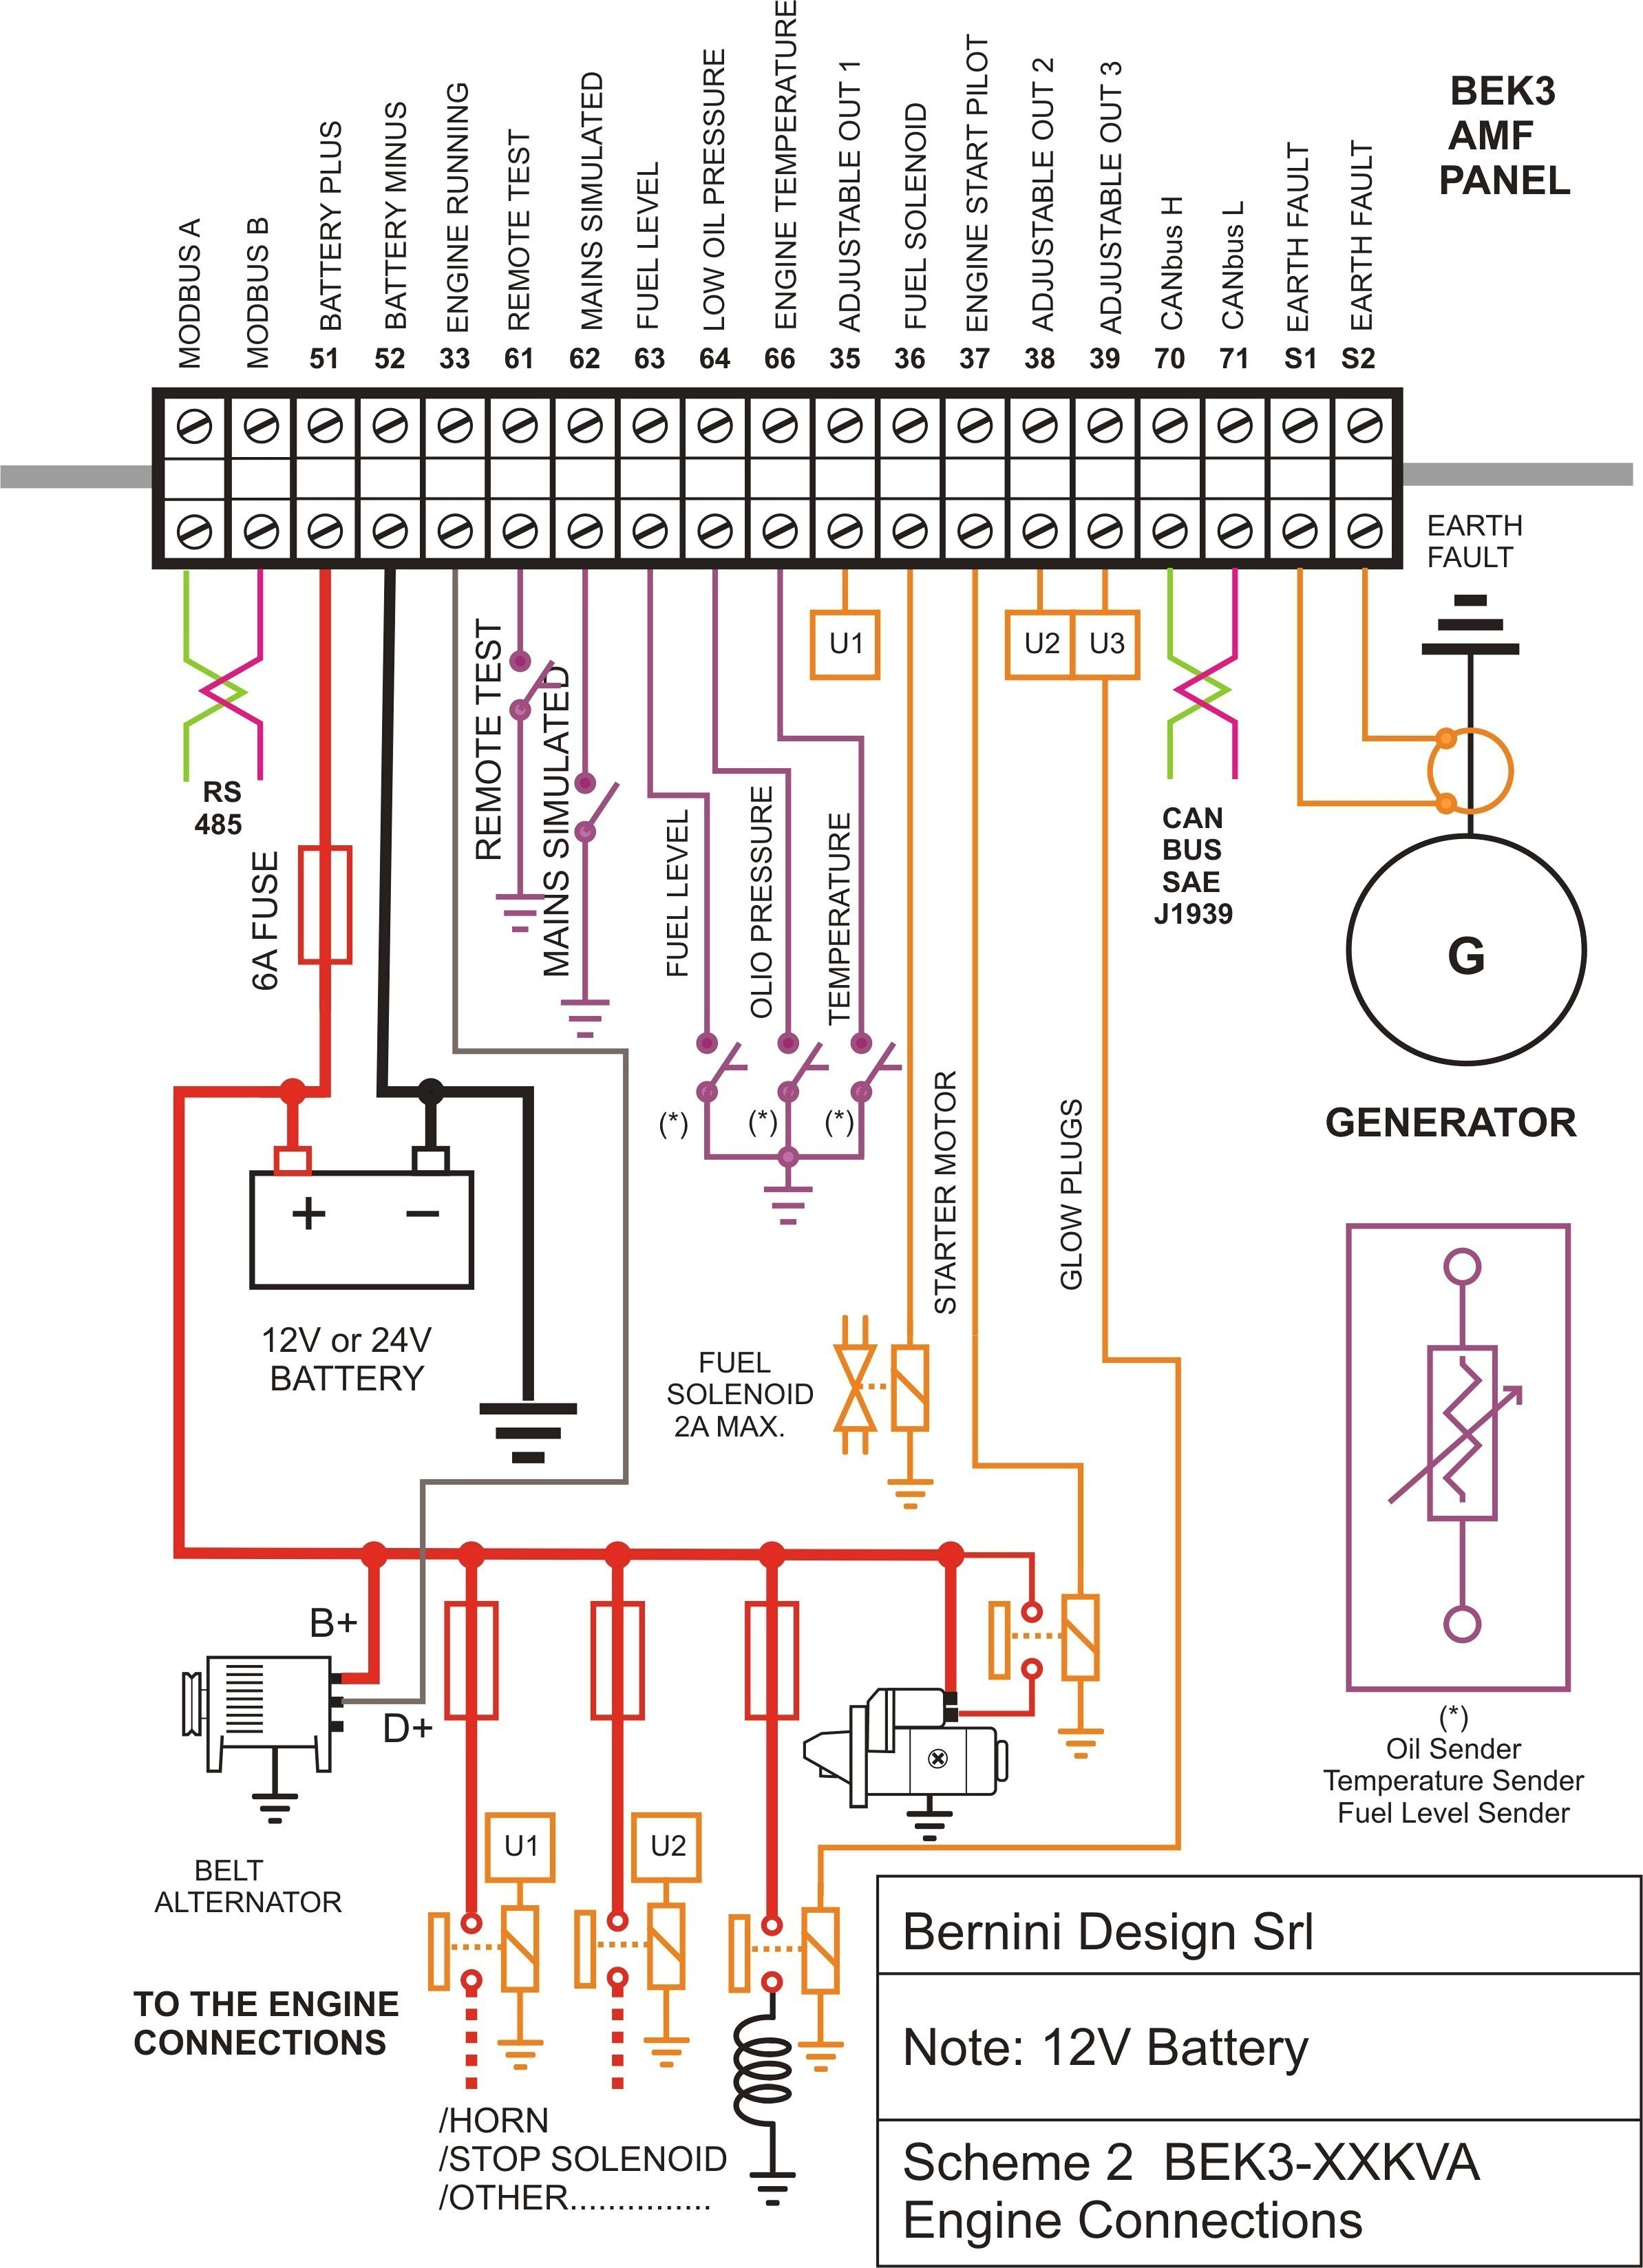 marine electrical wiring diagram Collection-house electrical wiring diagram Download Electrical Wiring Diagrams Best Electrical Diagram for House Unique Best DOWNLOAD Wiring Diagram 7-h